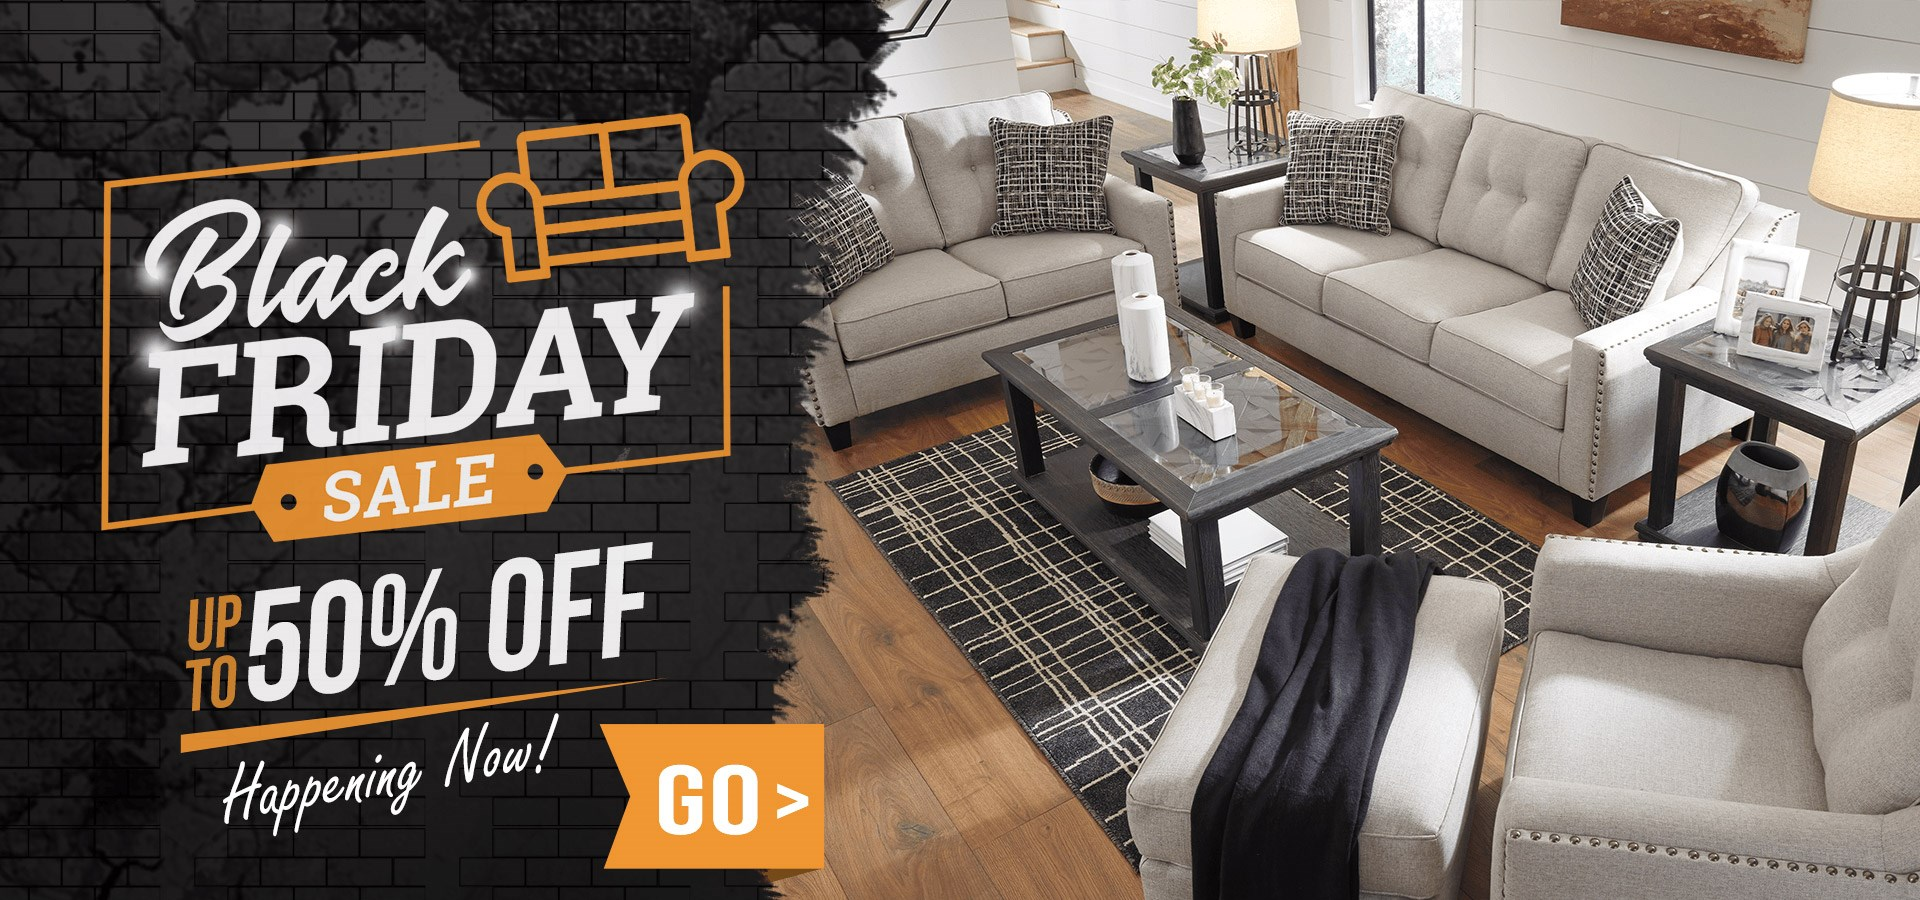 Black Friday Furniture Sale - Up To 50% OFF Storewide